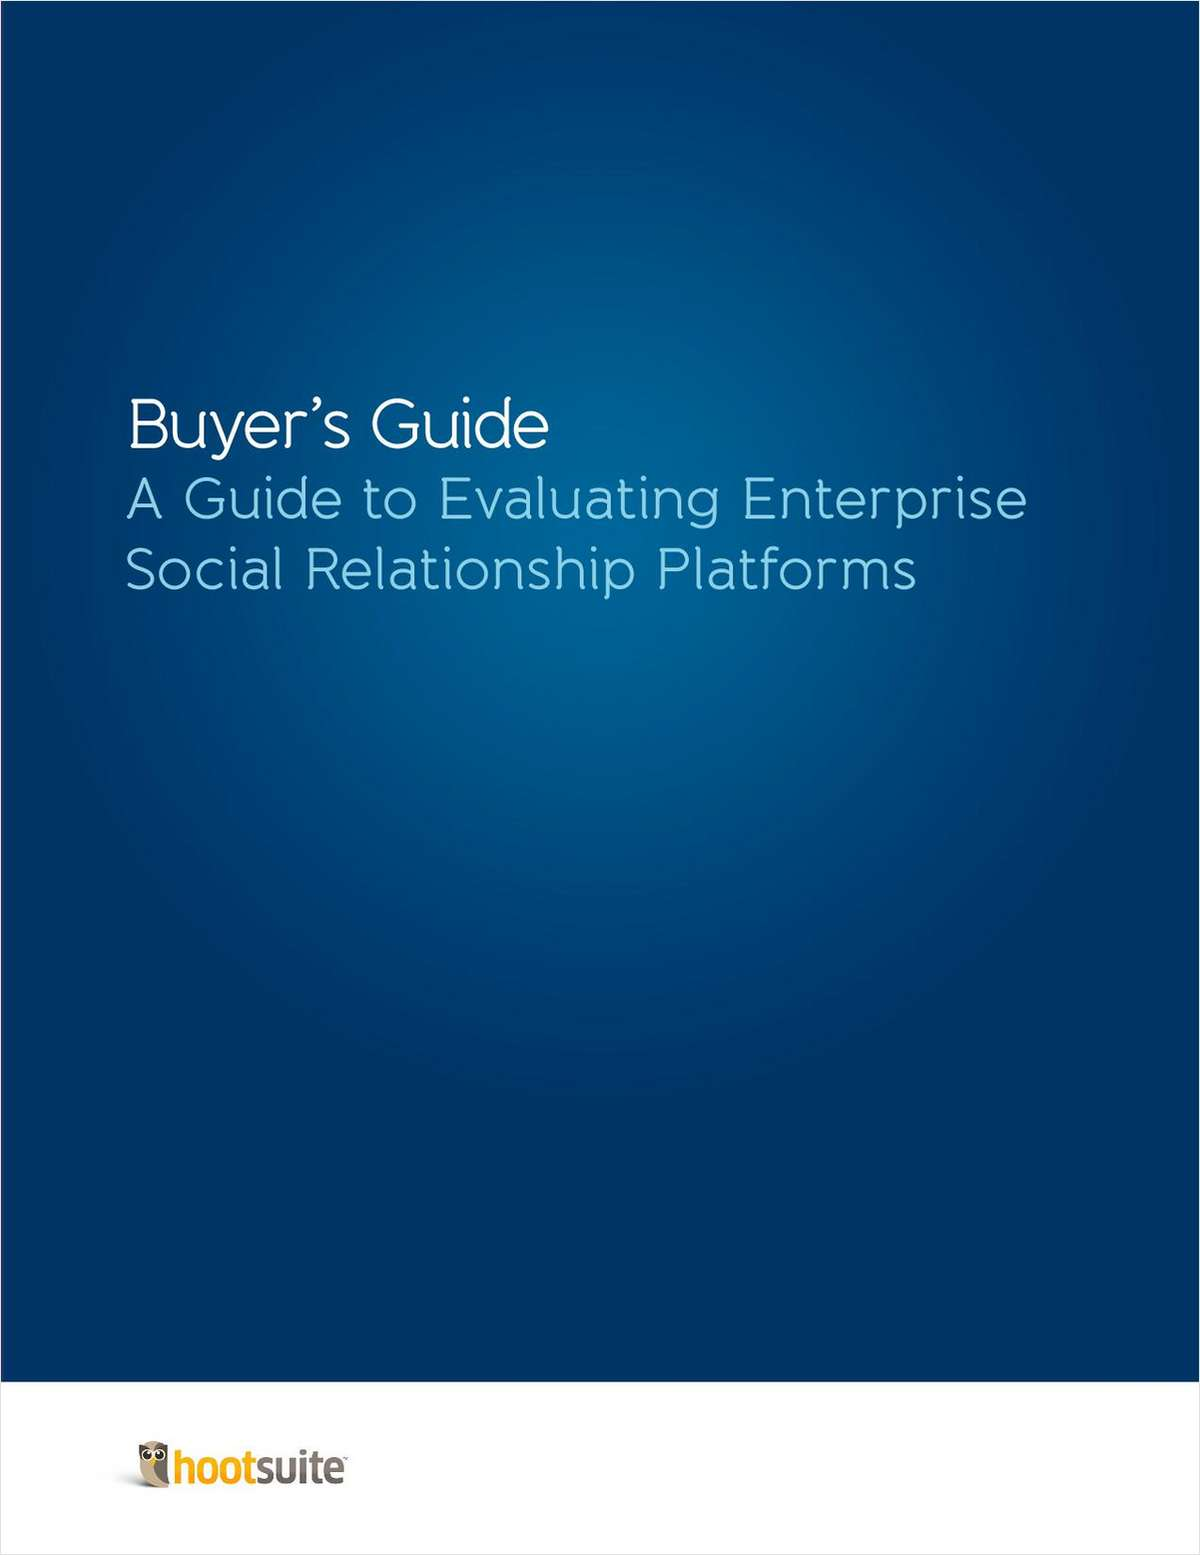 CIO Guide: Evaluating Enterprise Social Relationship Platforms